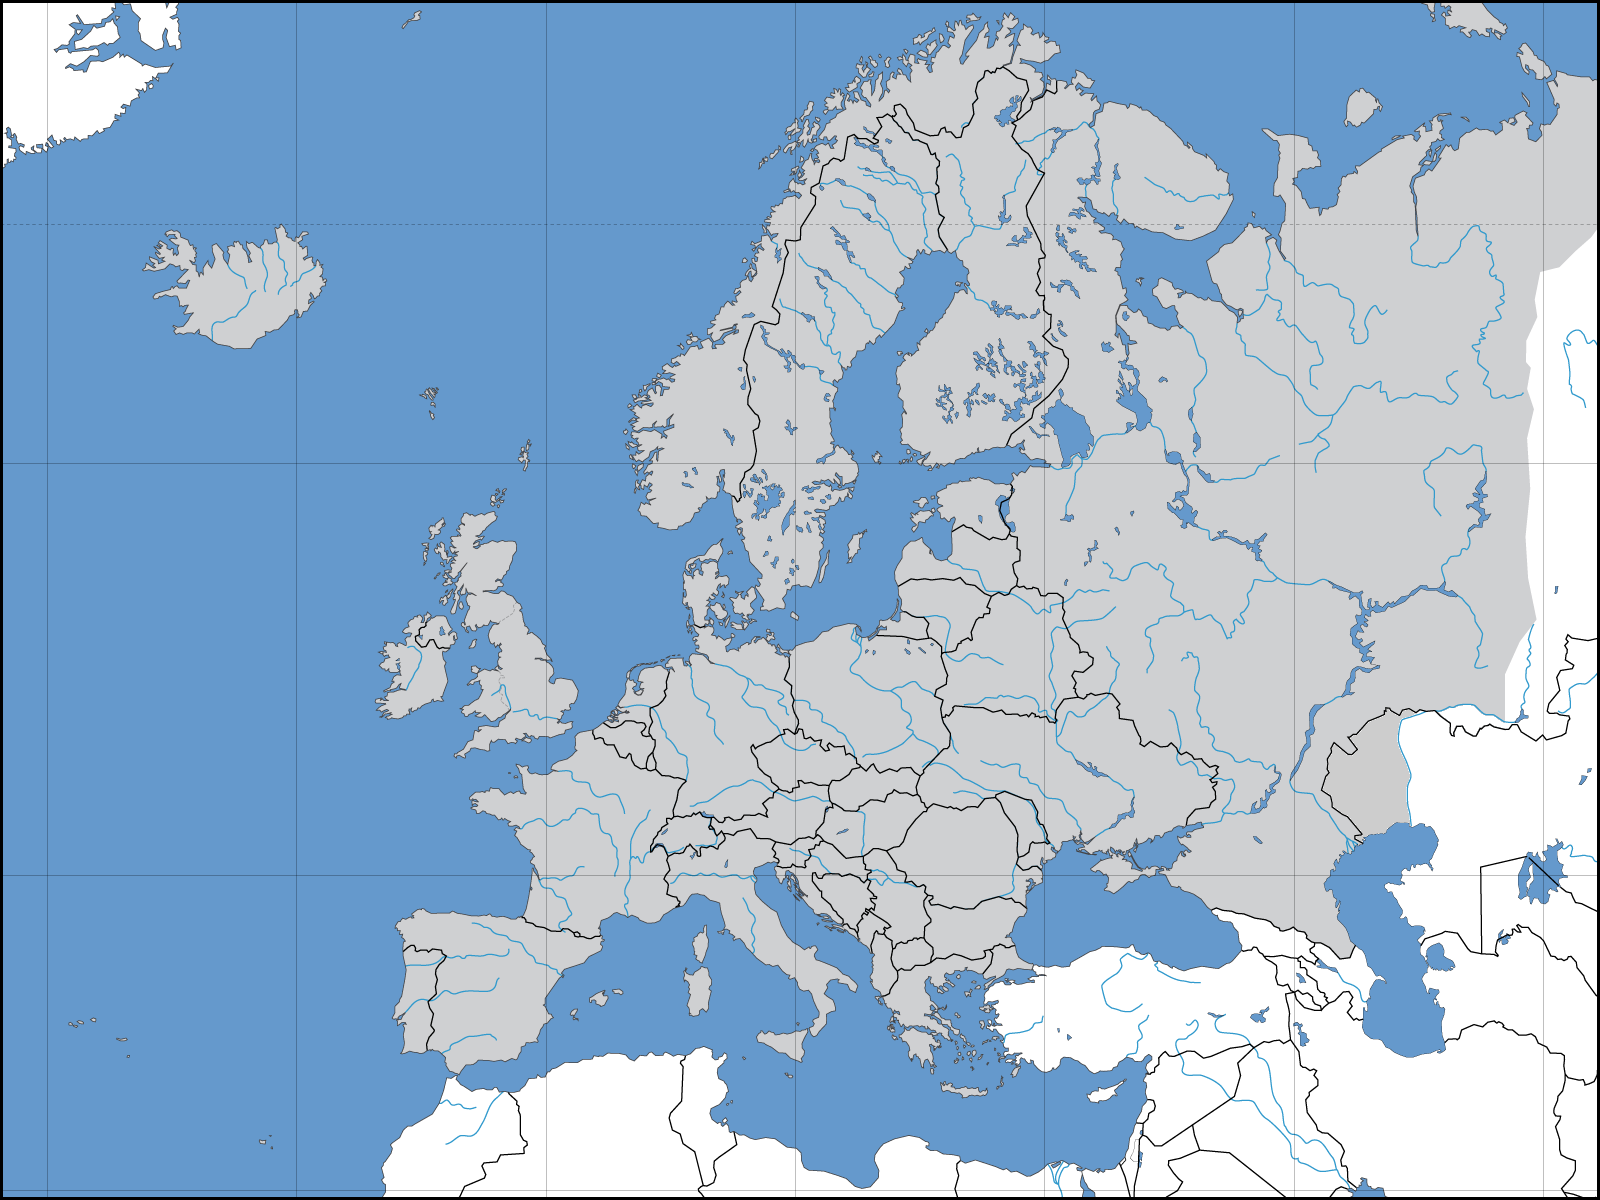 Europe political blank map - Full size